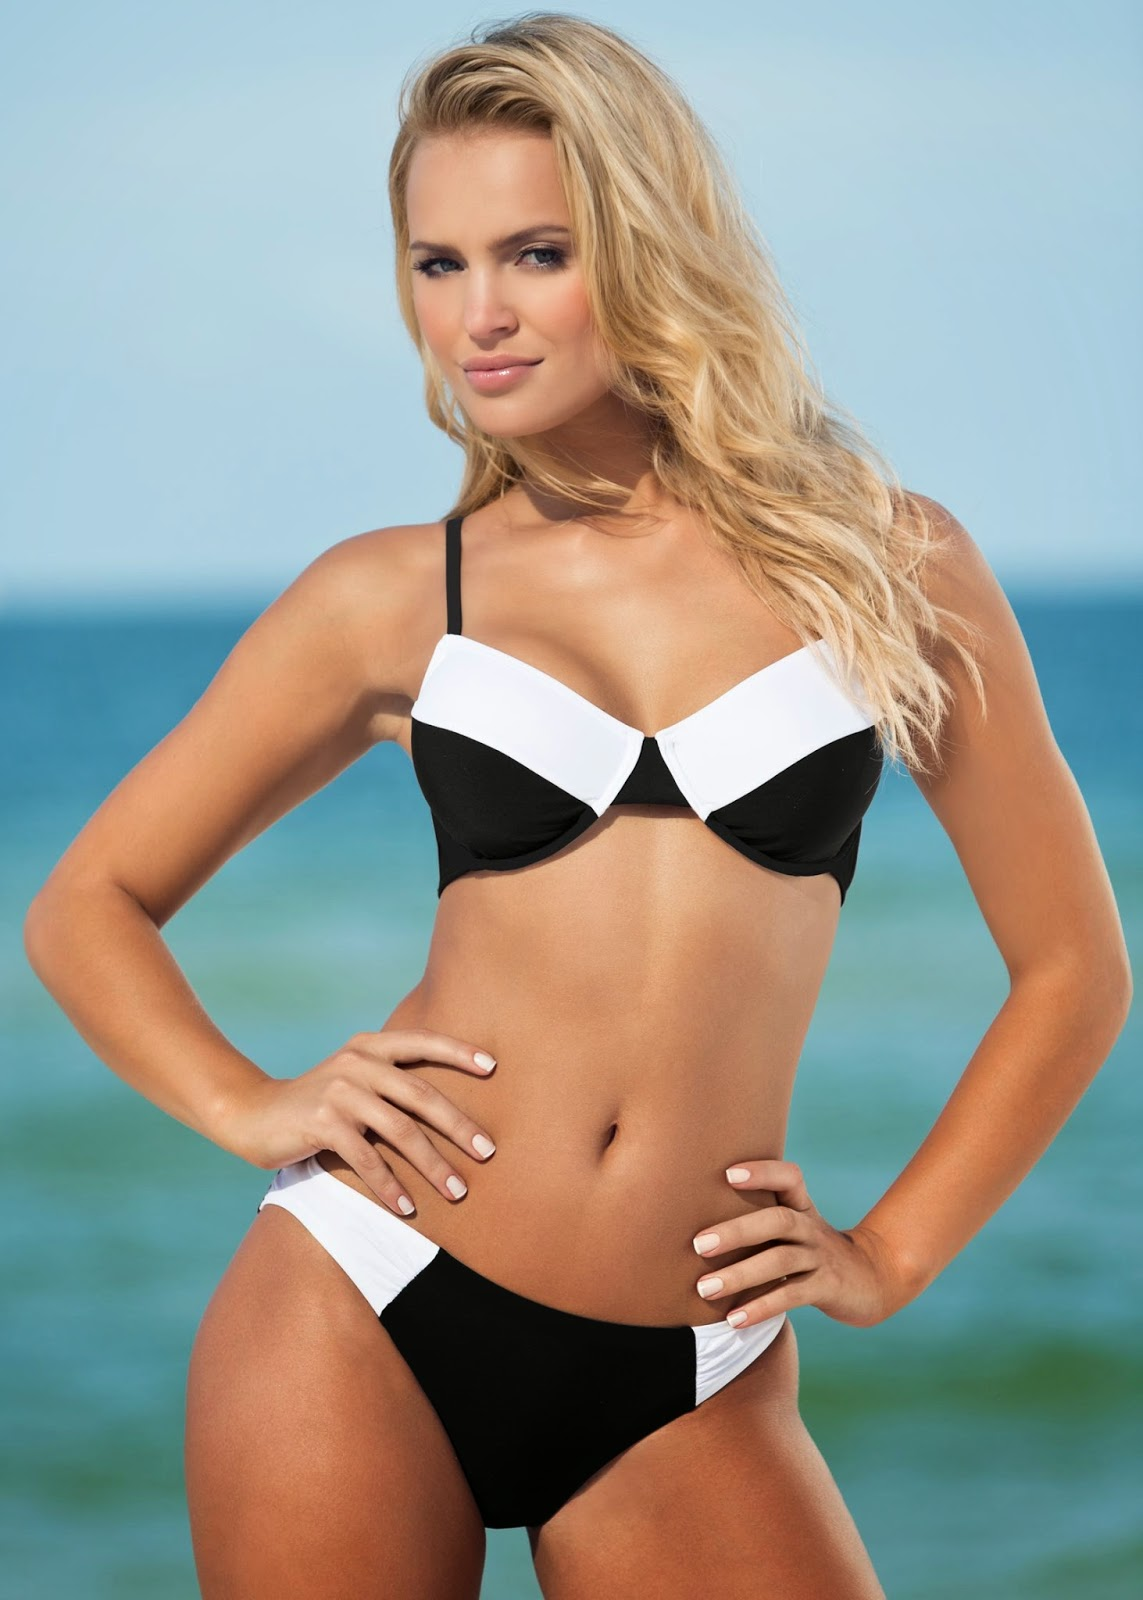 Model Photos: Elisandra Tomacheski Venus Swimwear